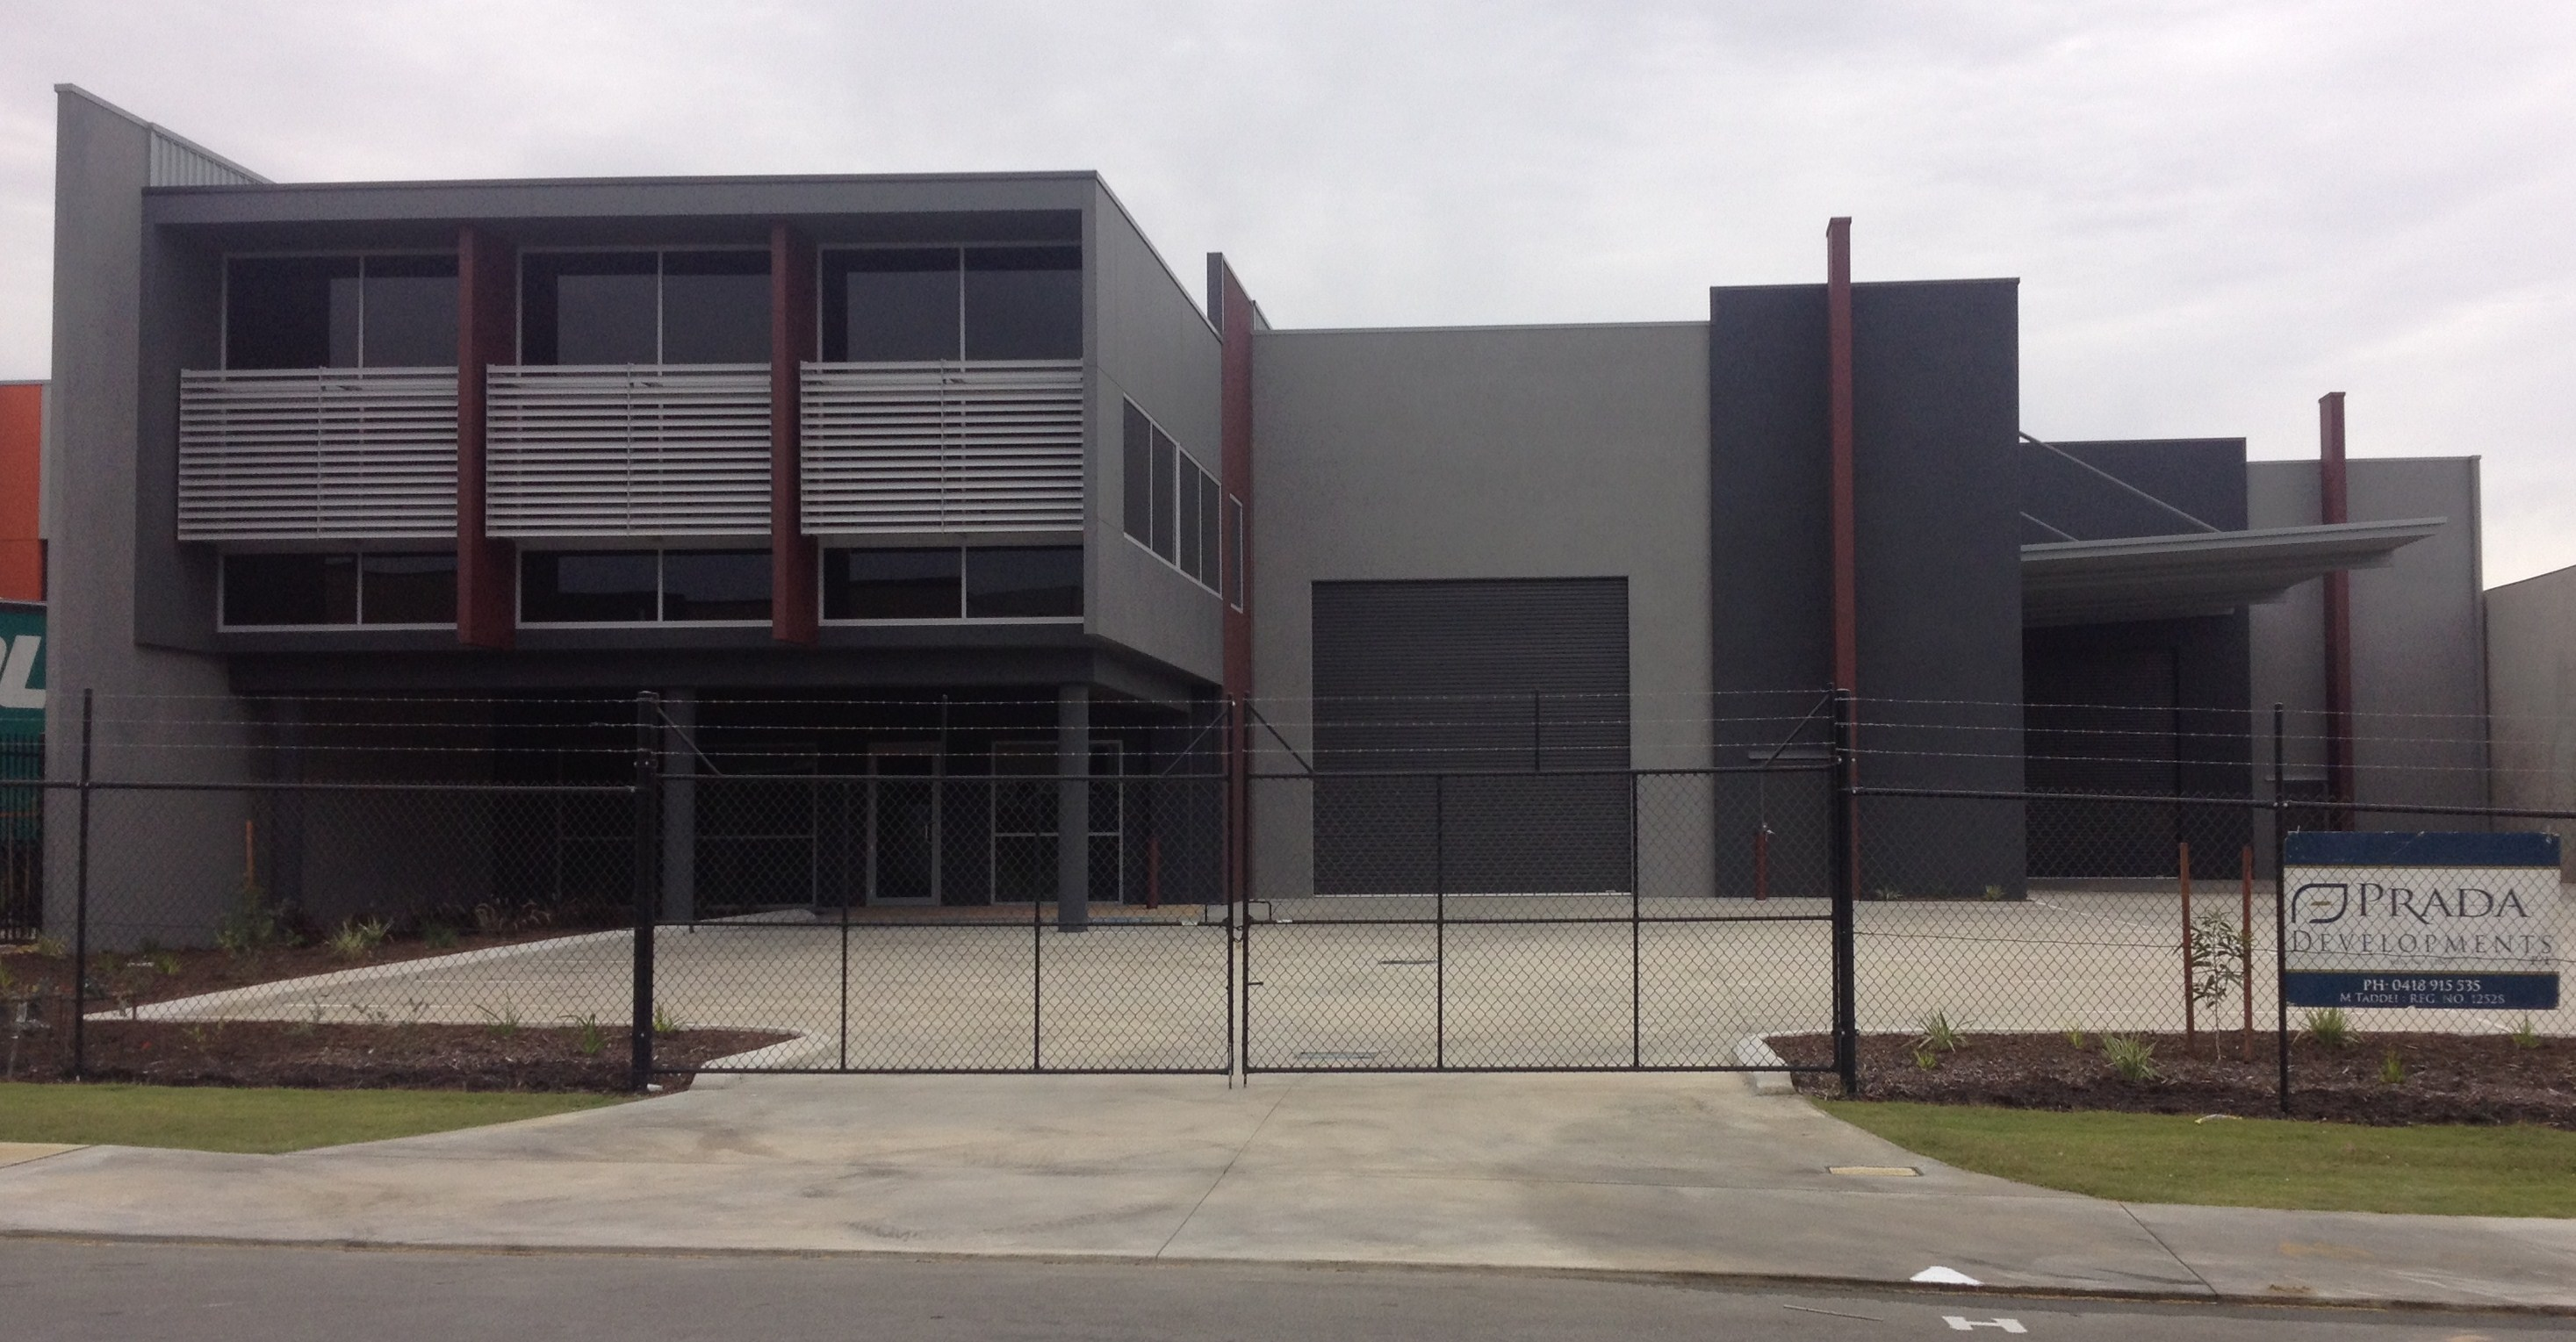 Exterior of securely fenced commercial property painted in shades of grey